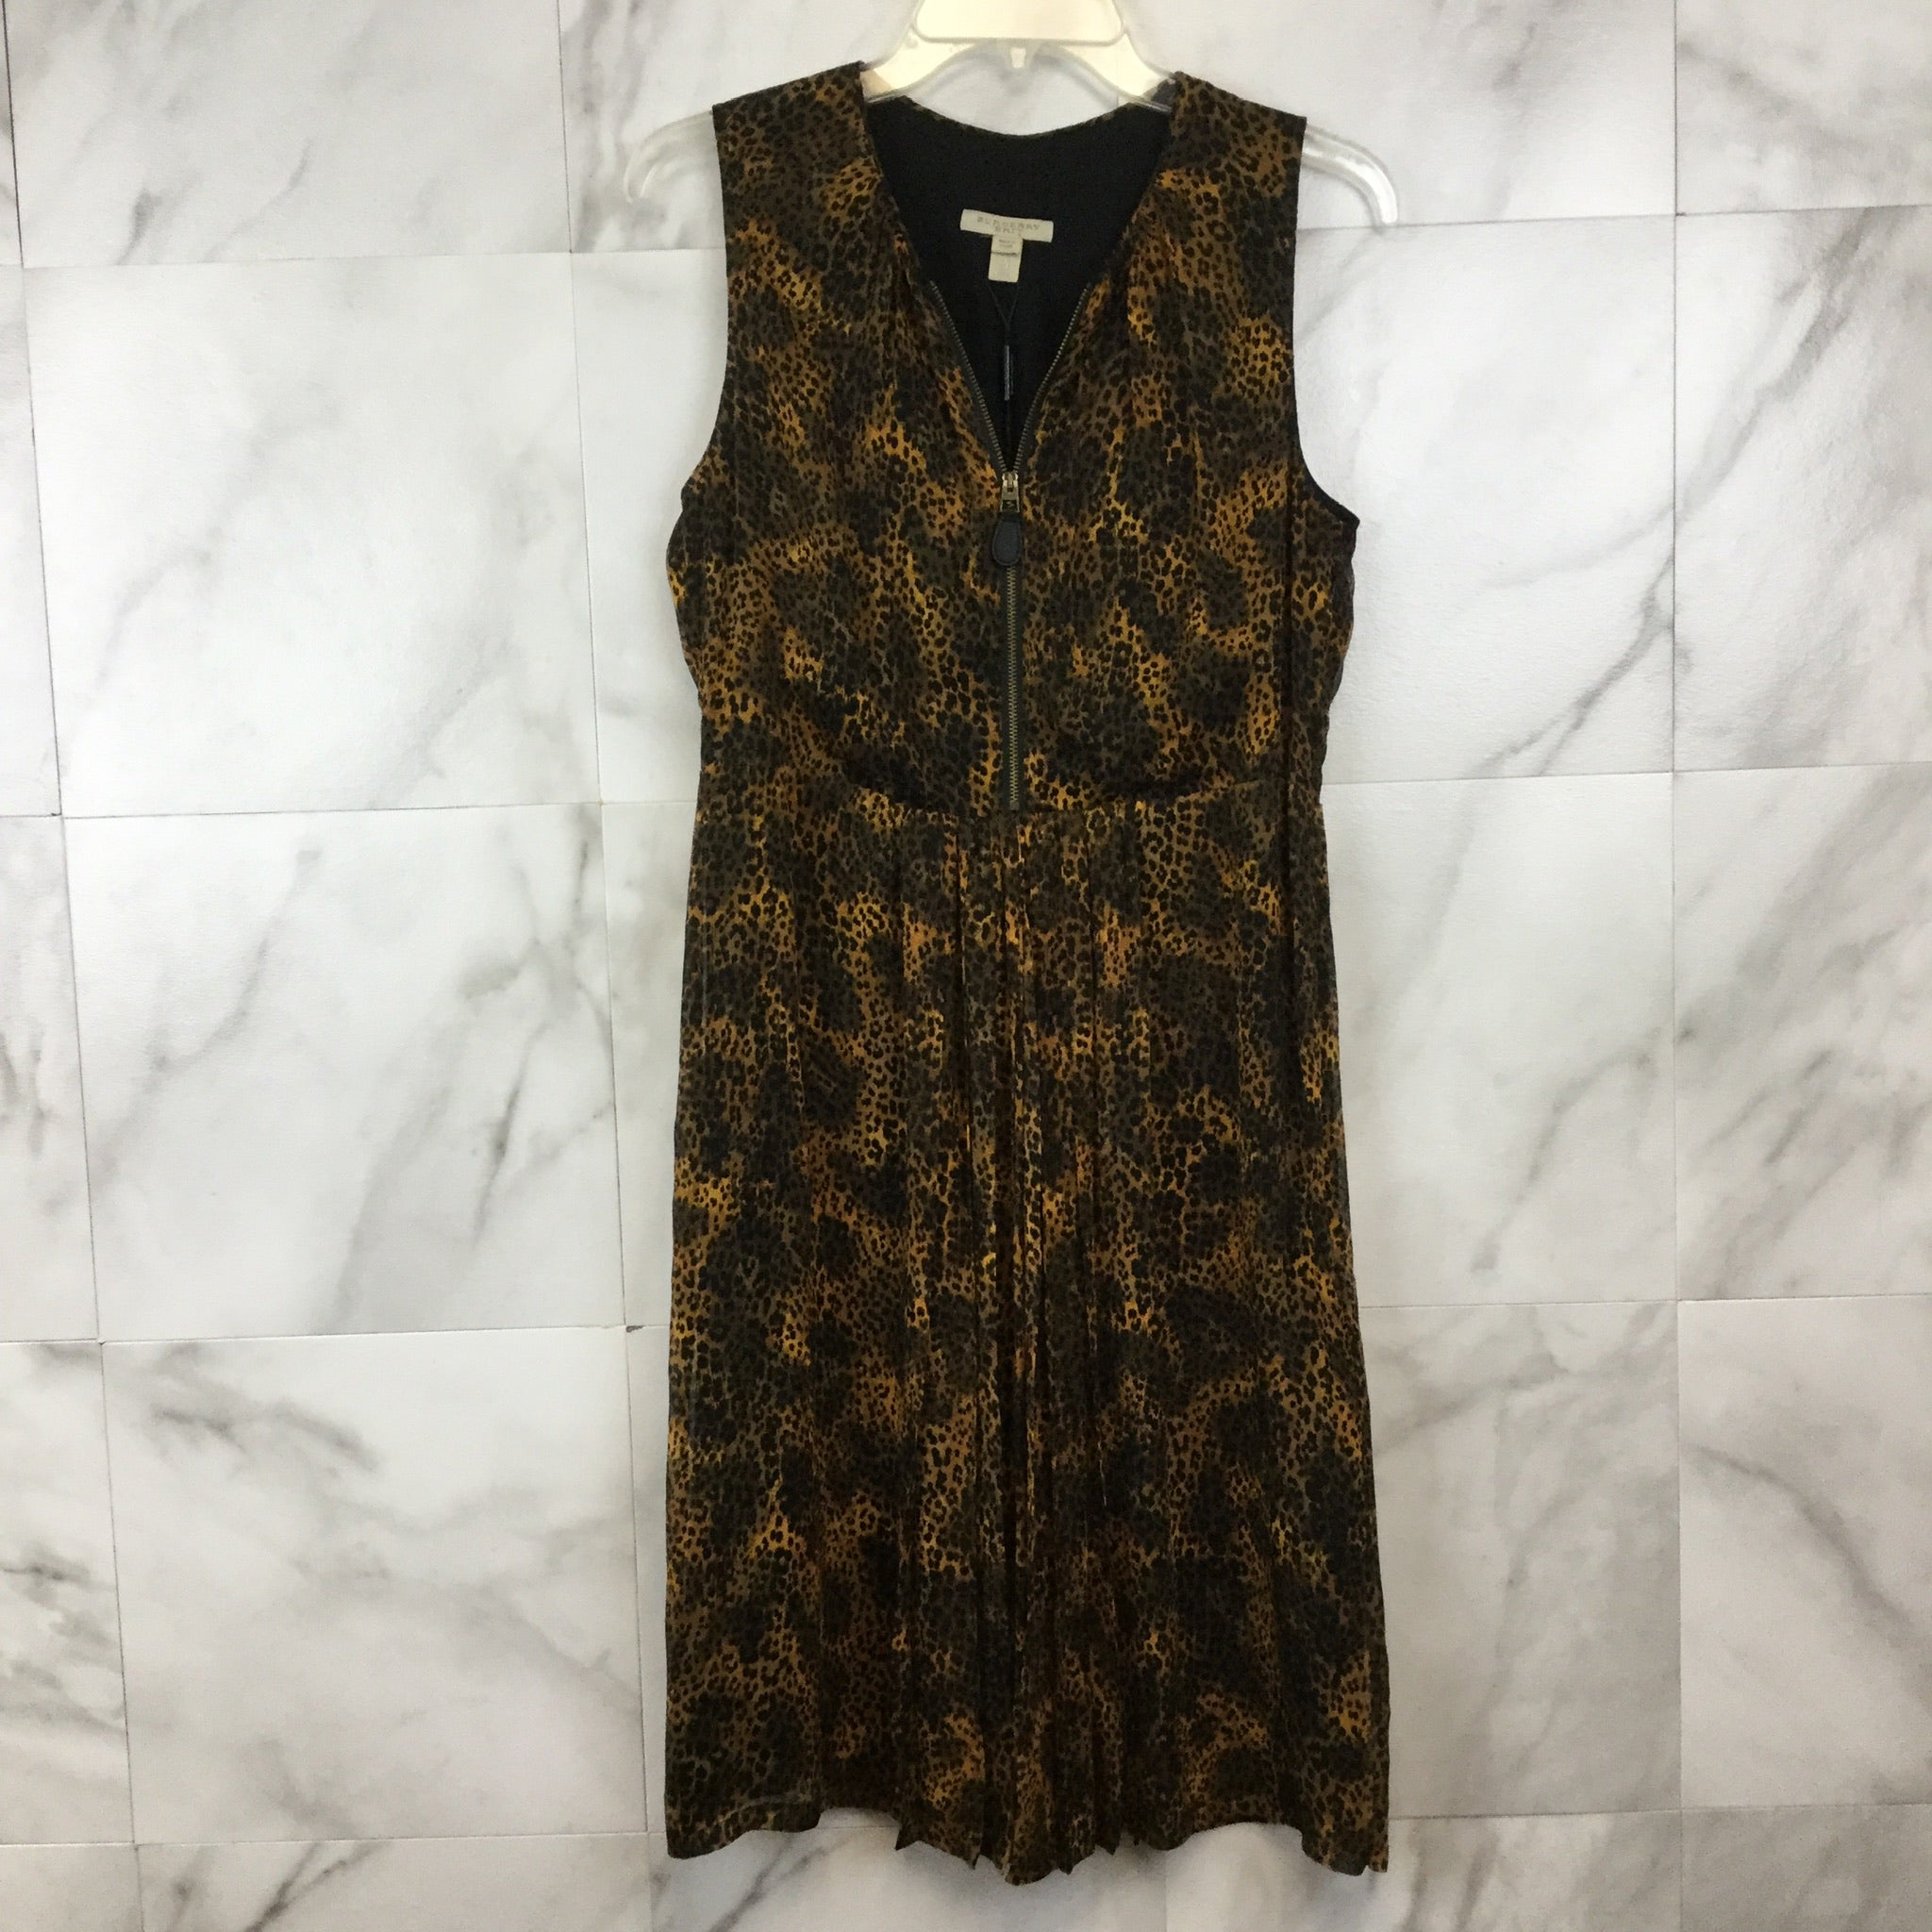 Burberry Brit Animal Print Crepon Dress - size 8